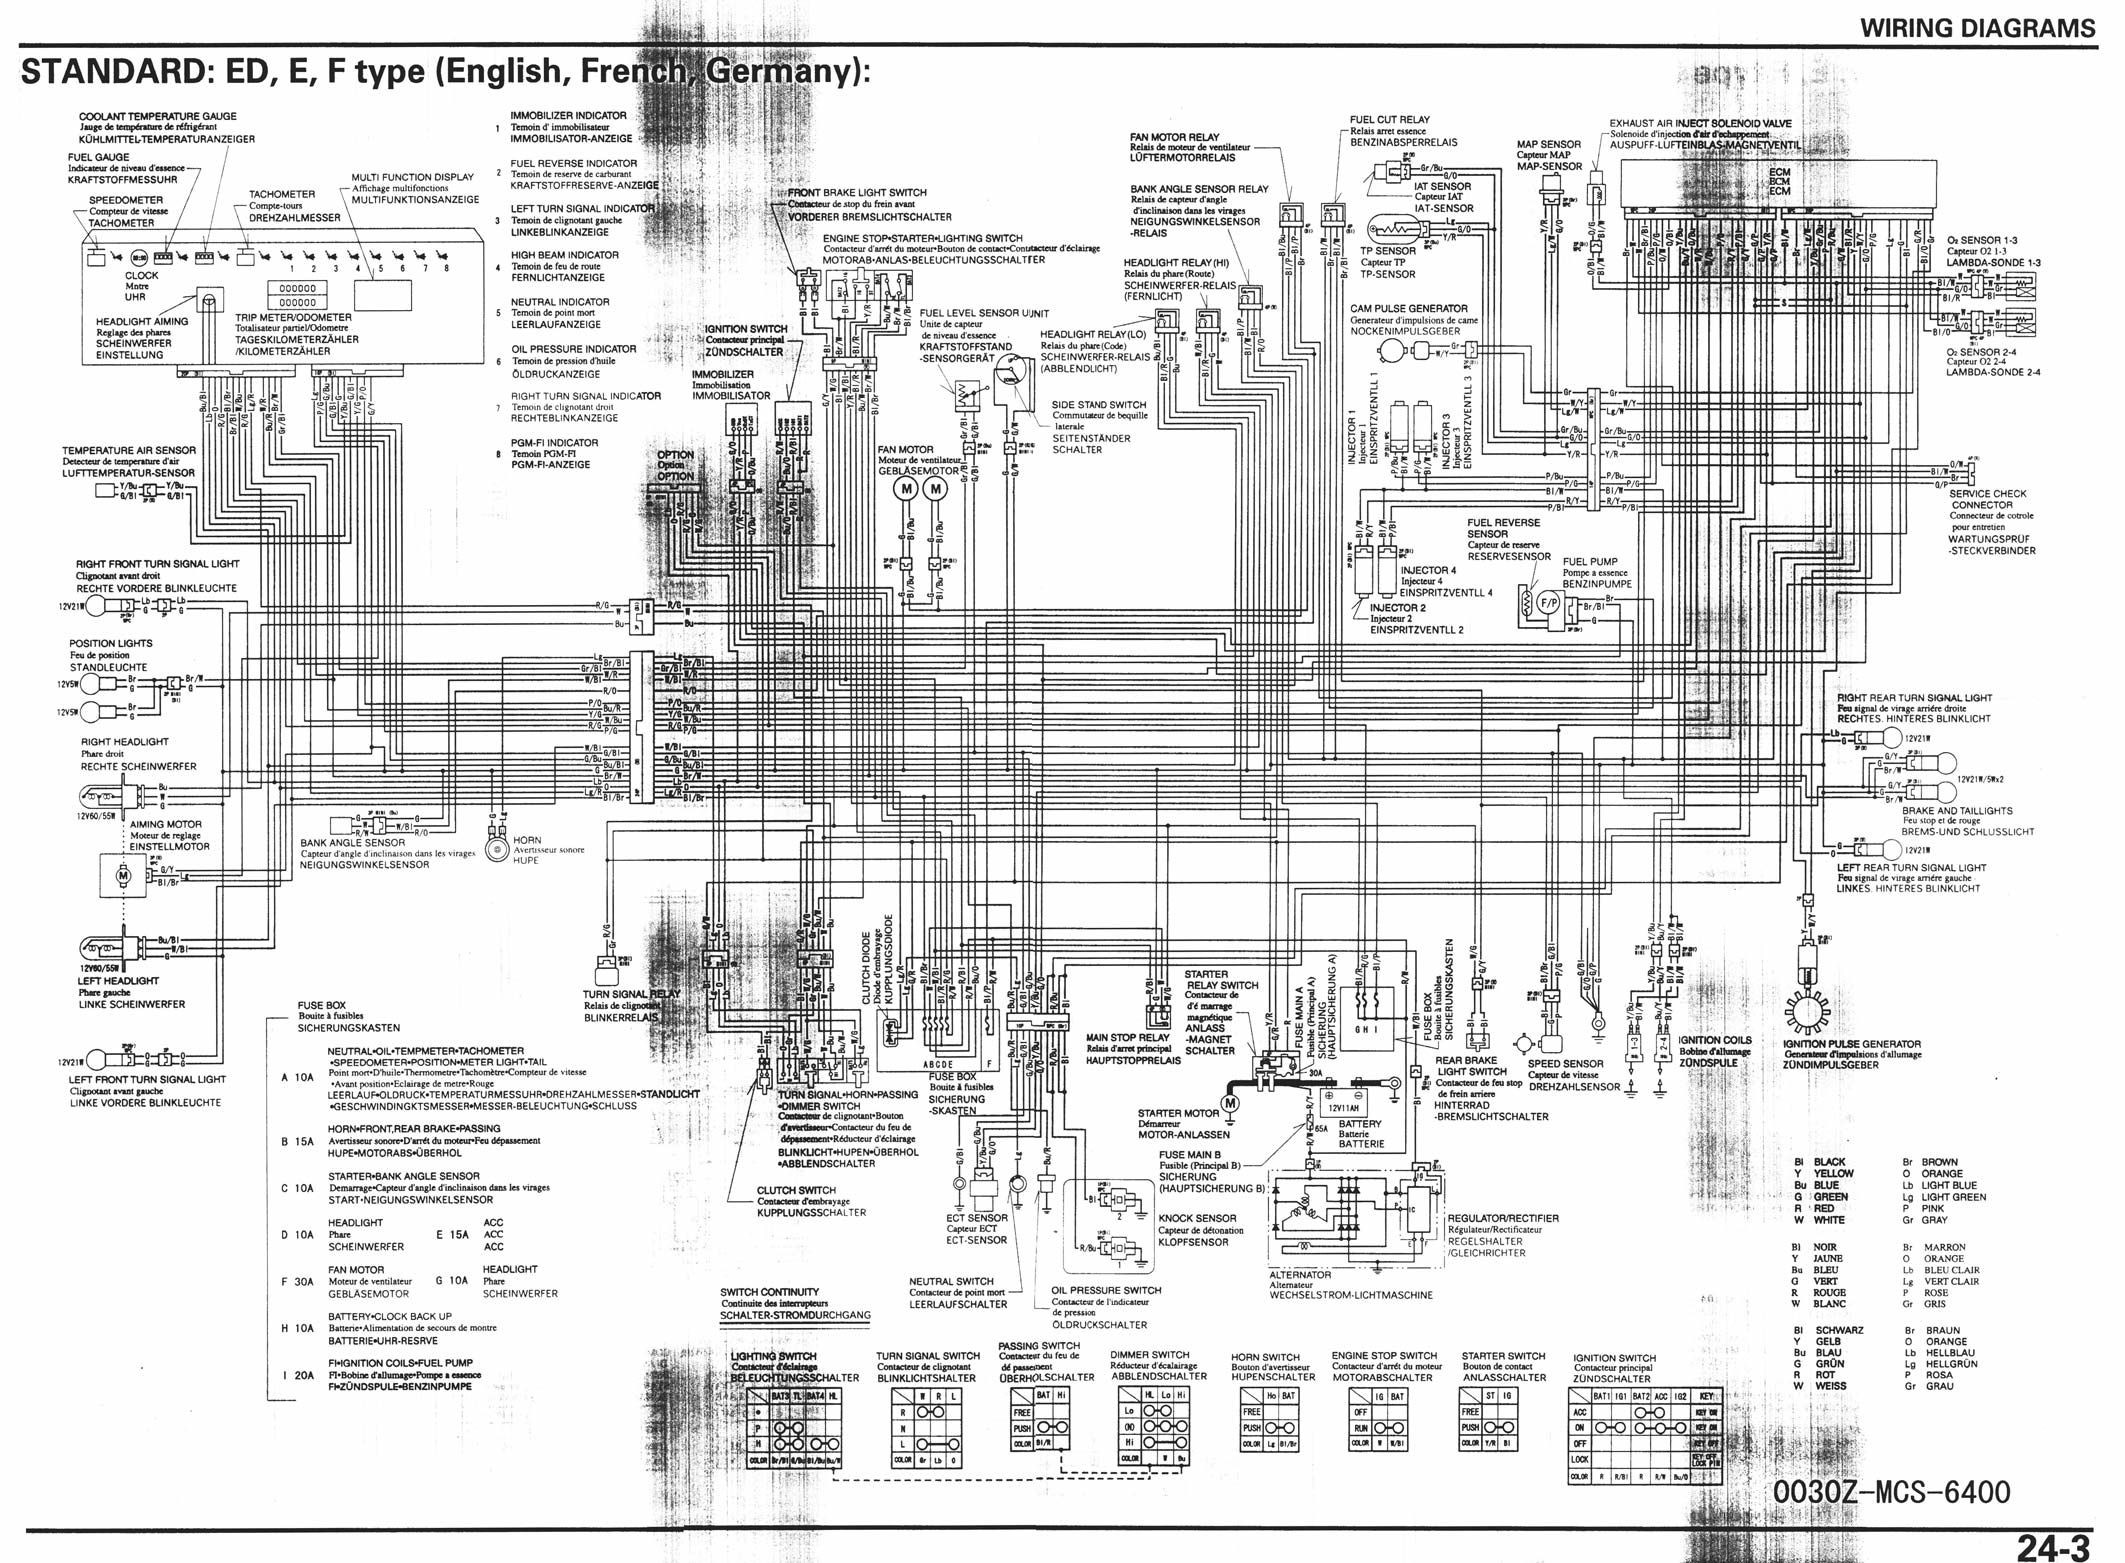 Iskra Alternators Connection Diagram Diagram] Bmw F650gs Wiring Diagram Fitfathers Me Throughout Of Iskra Alternators Connection Diagram